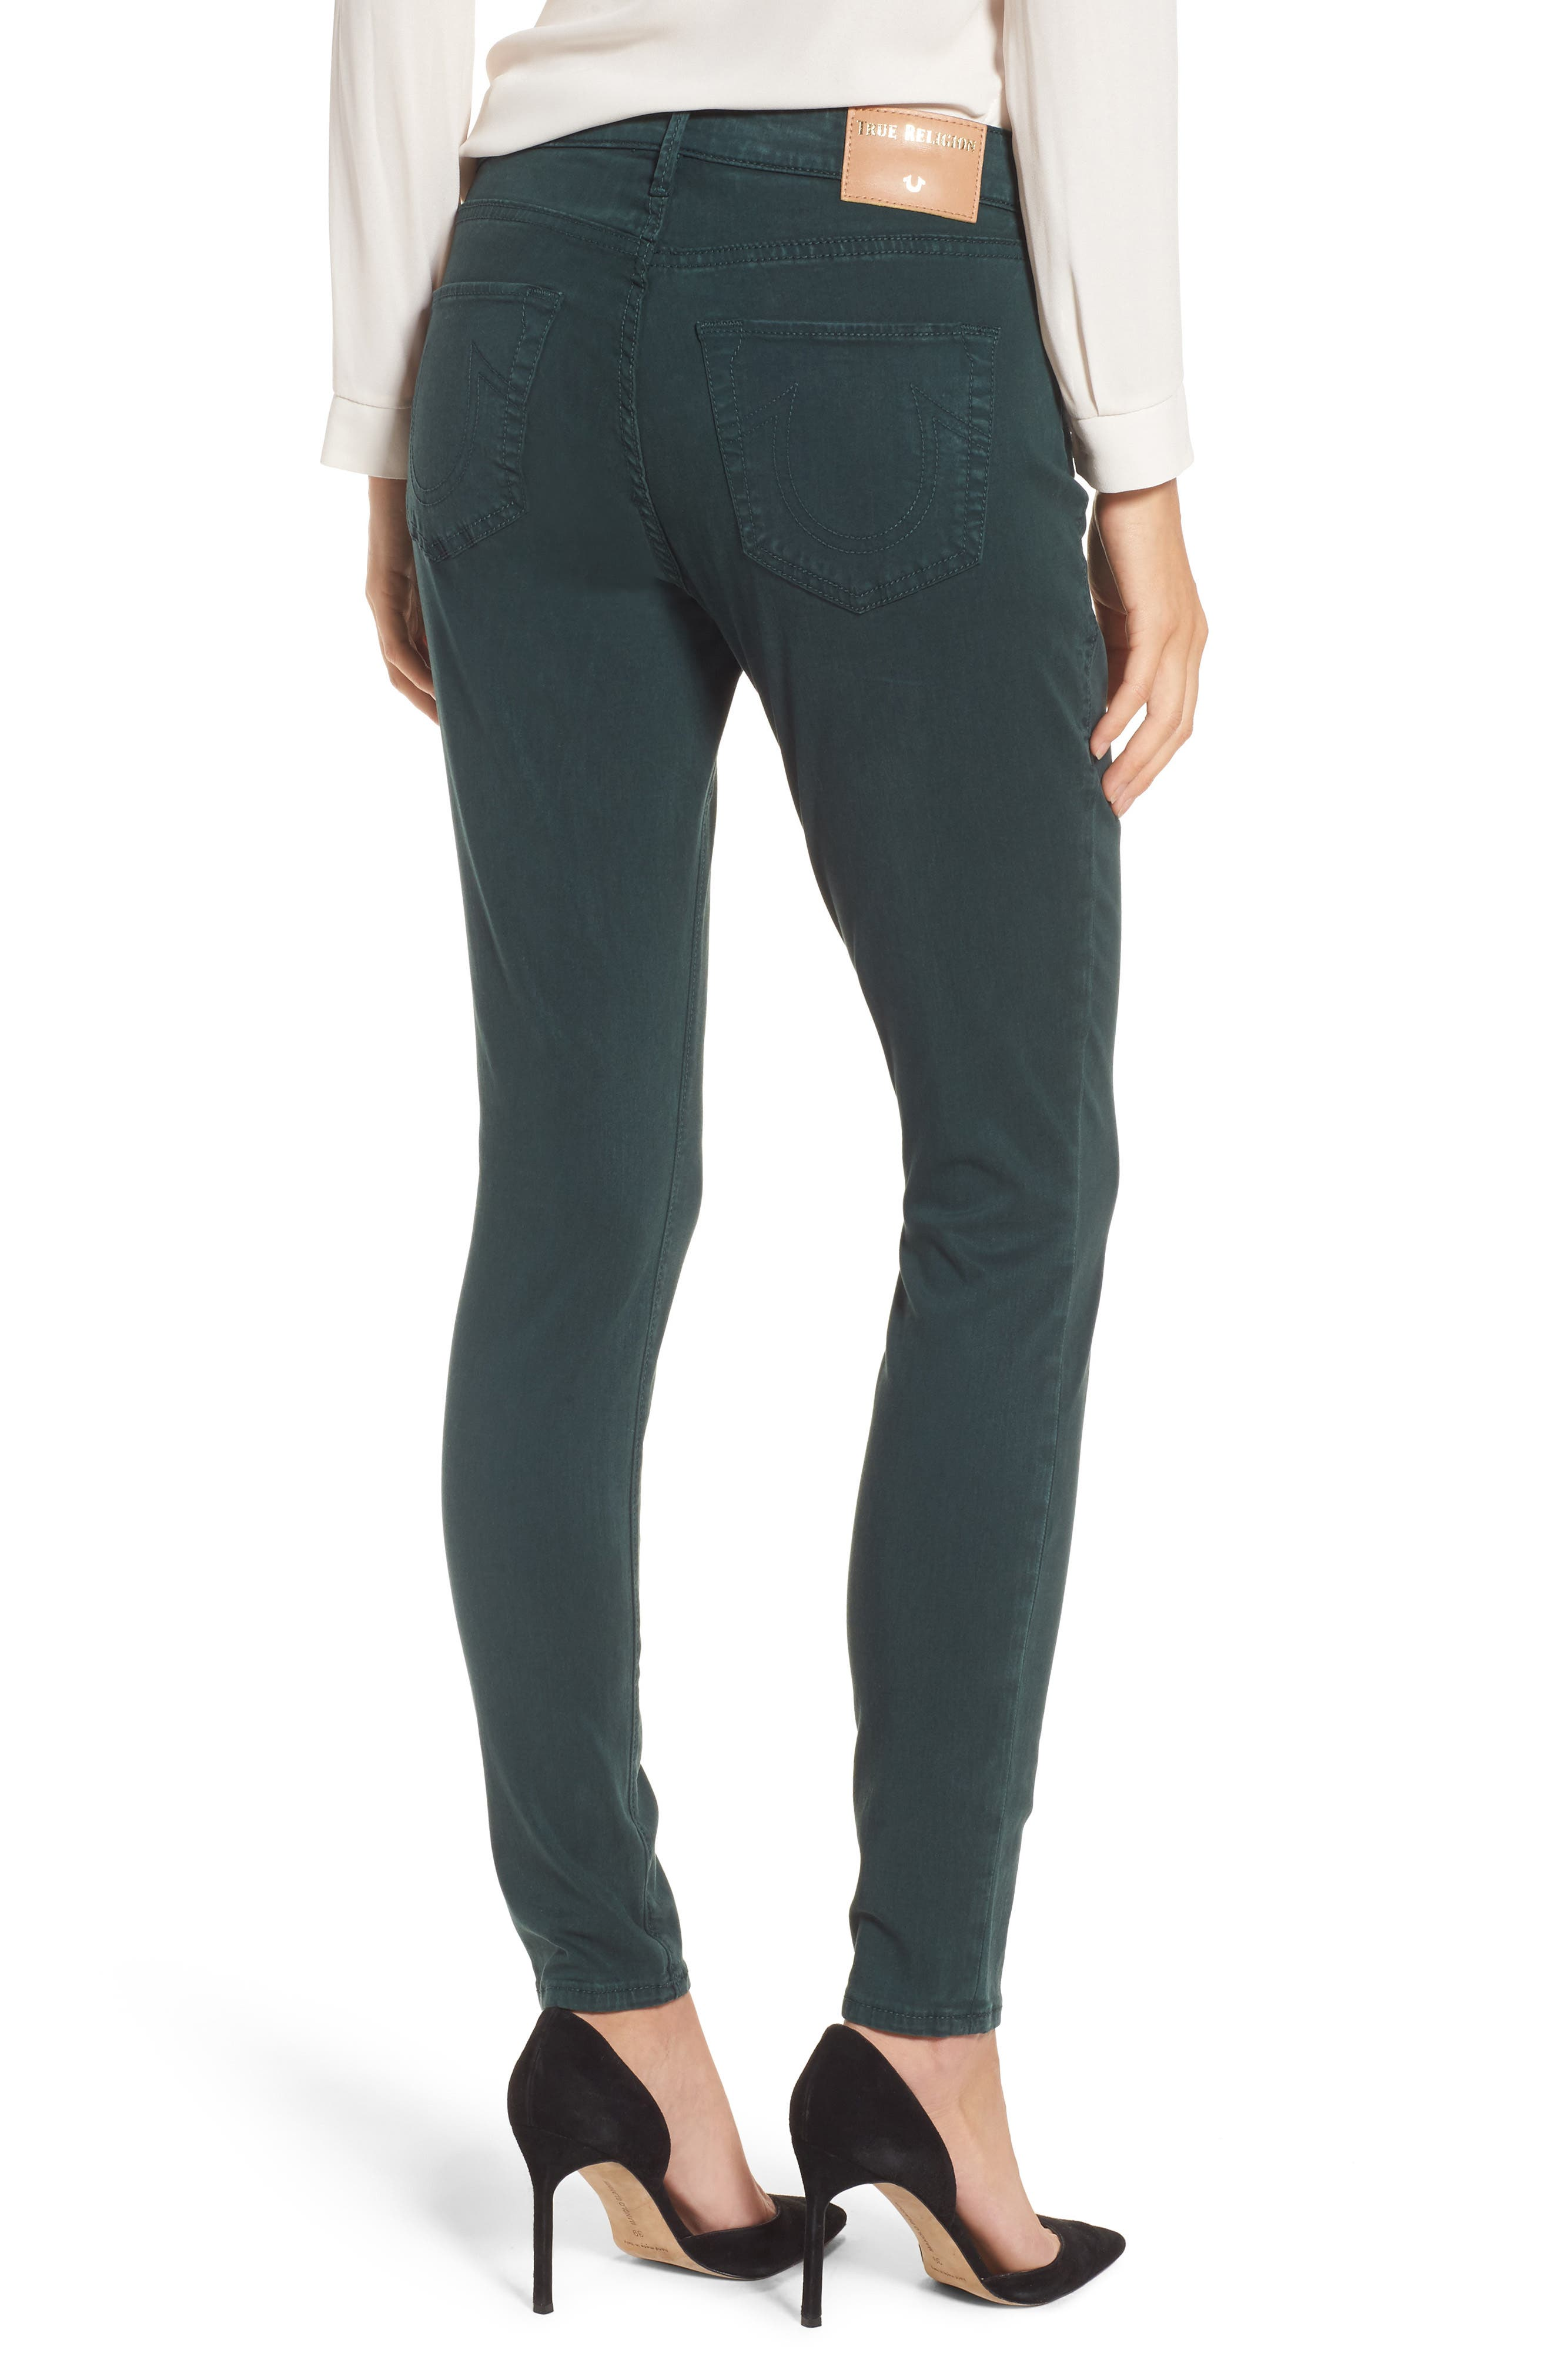 Jennie Curvy Skinny Jeans,                             Alternate thumbnail 2, color,                             300